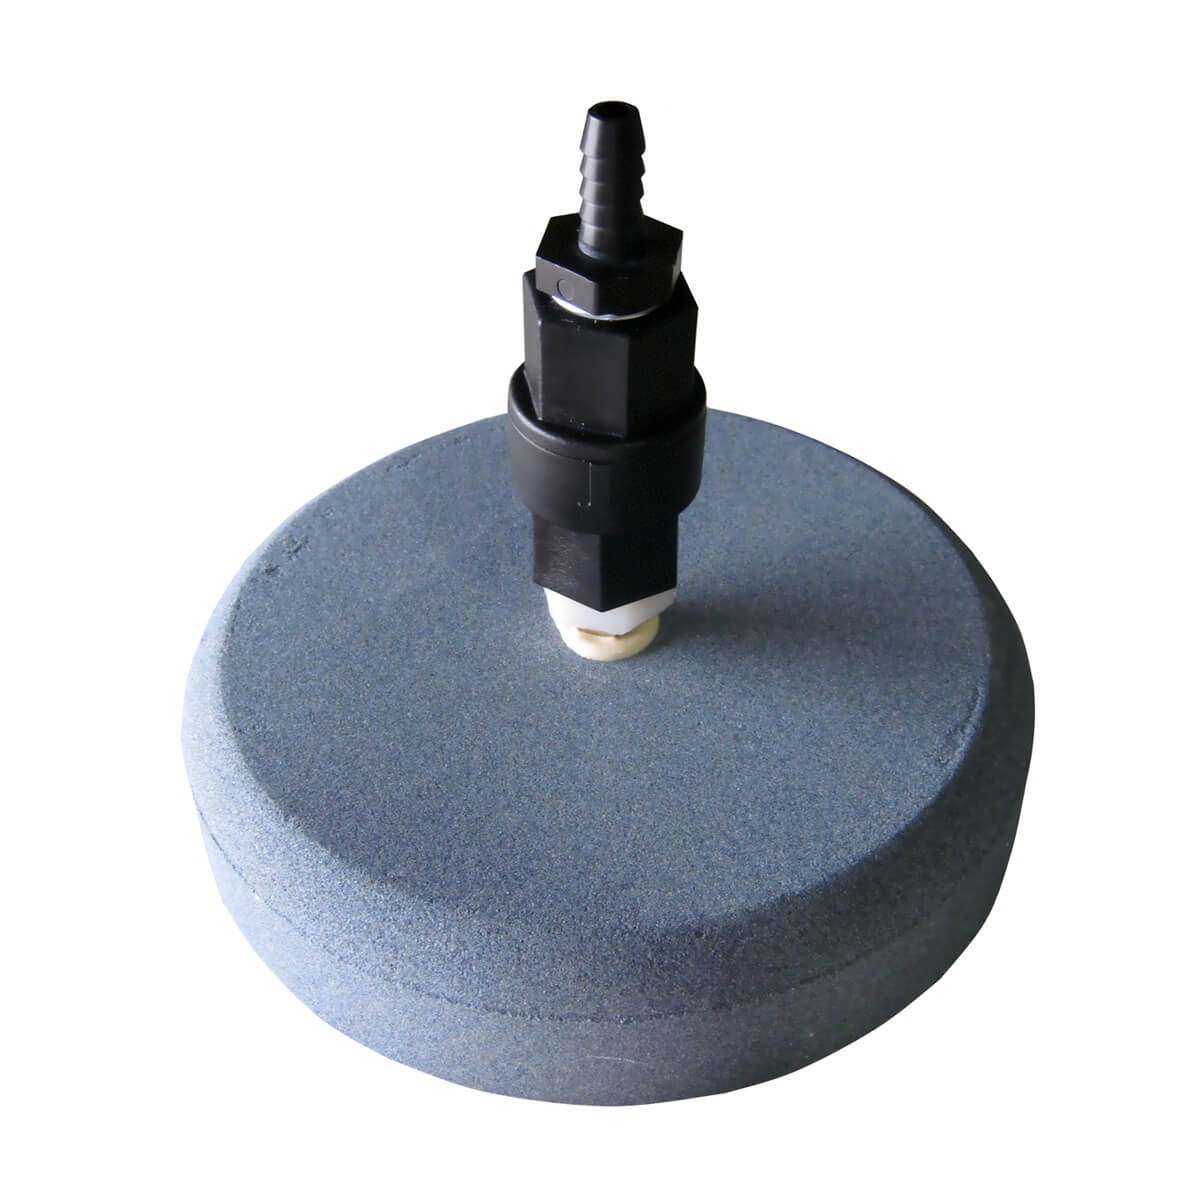 Airstone Diffuser and Foot Valve Kit